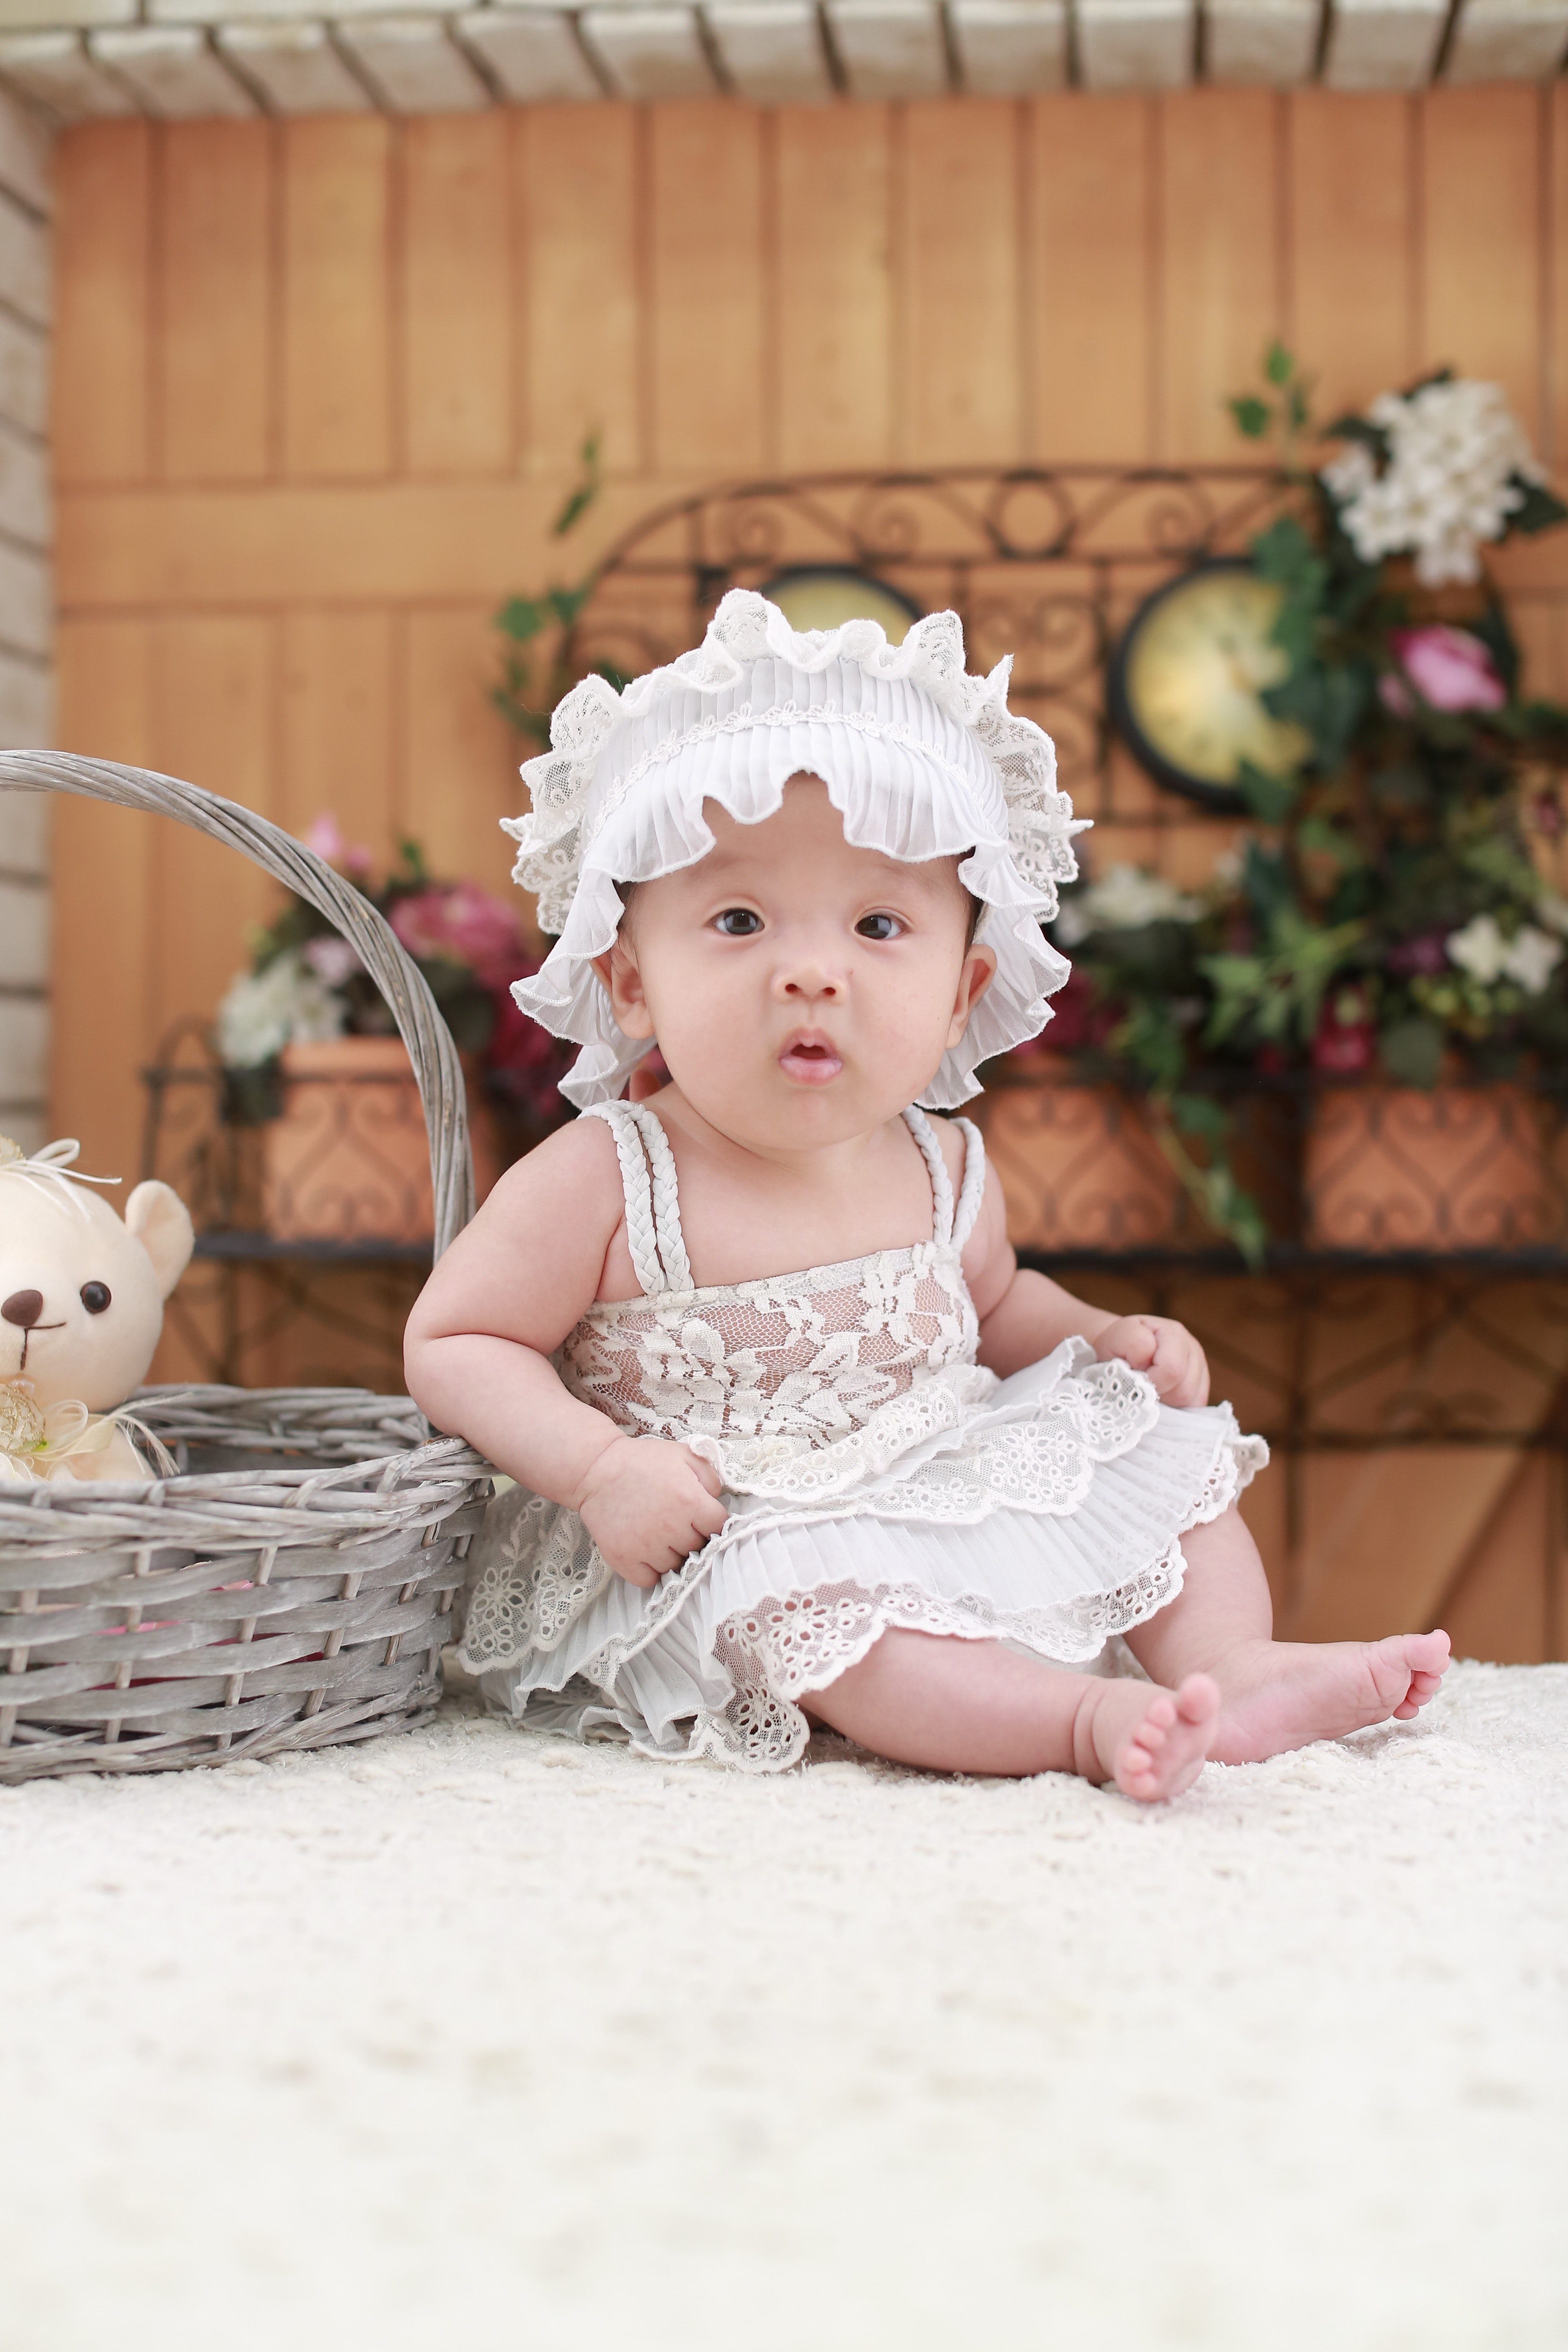 baby wearing white headband and white lace floral dress